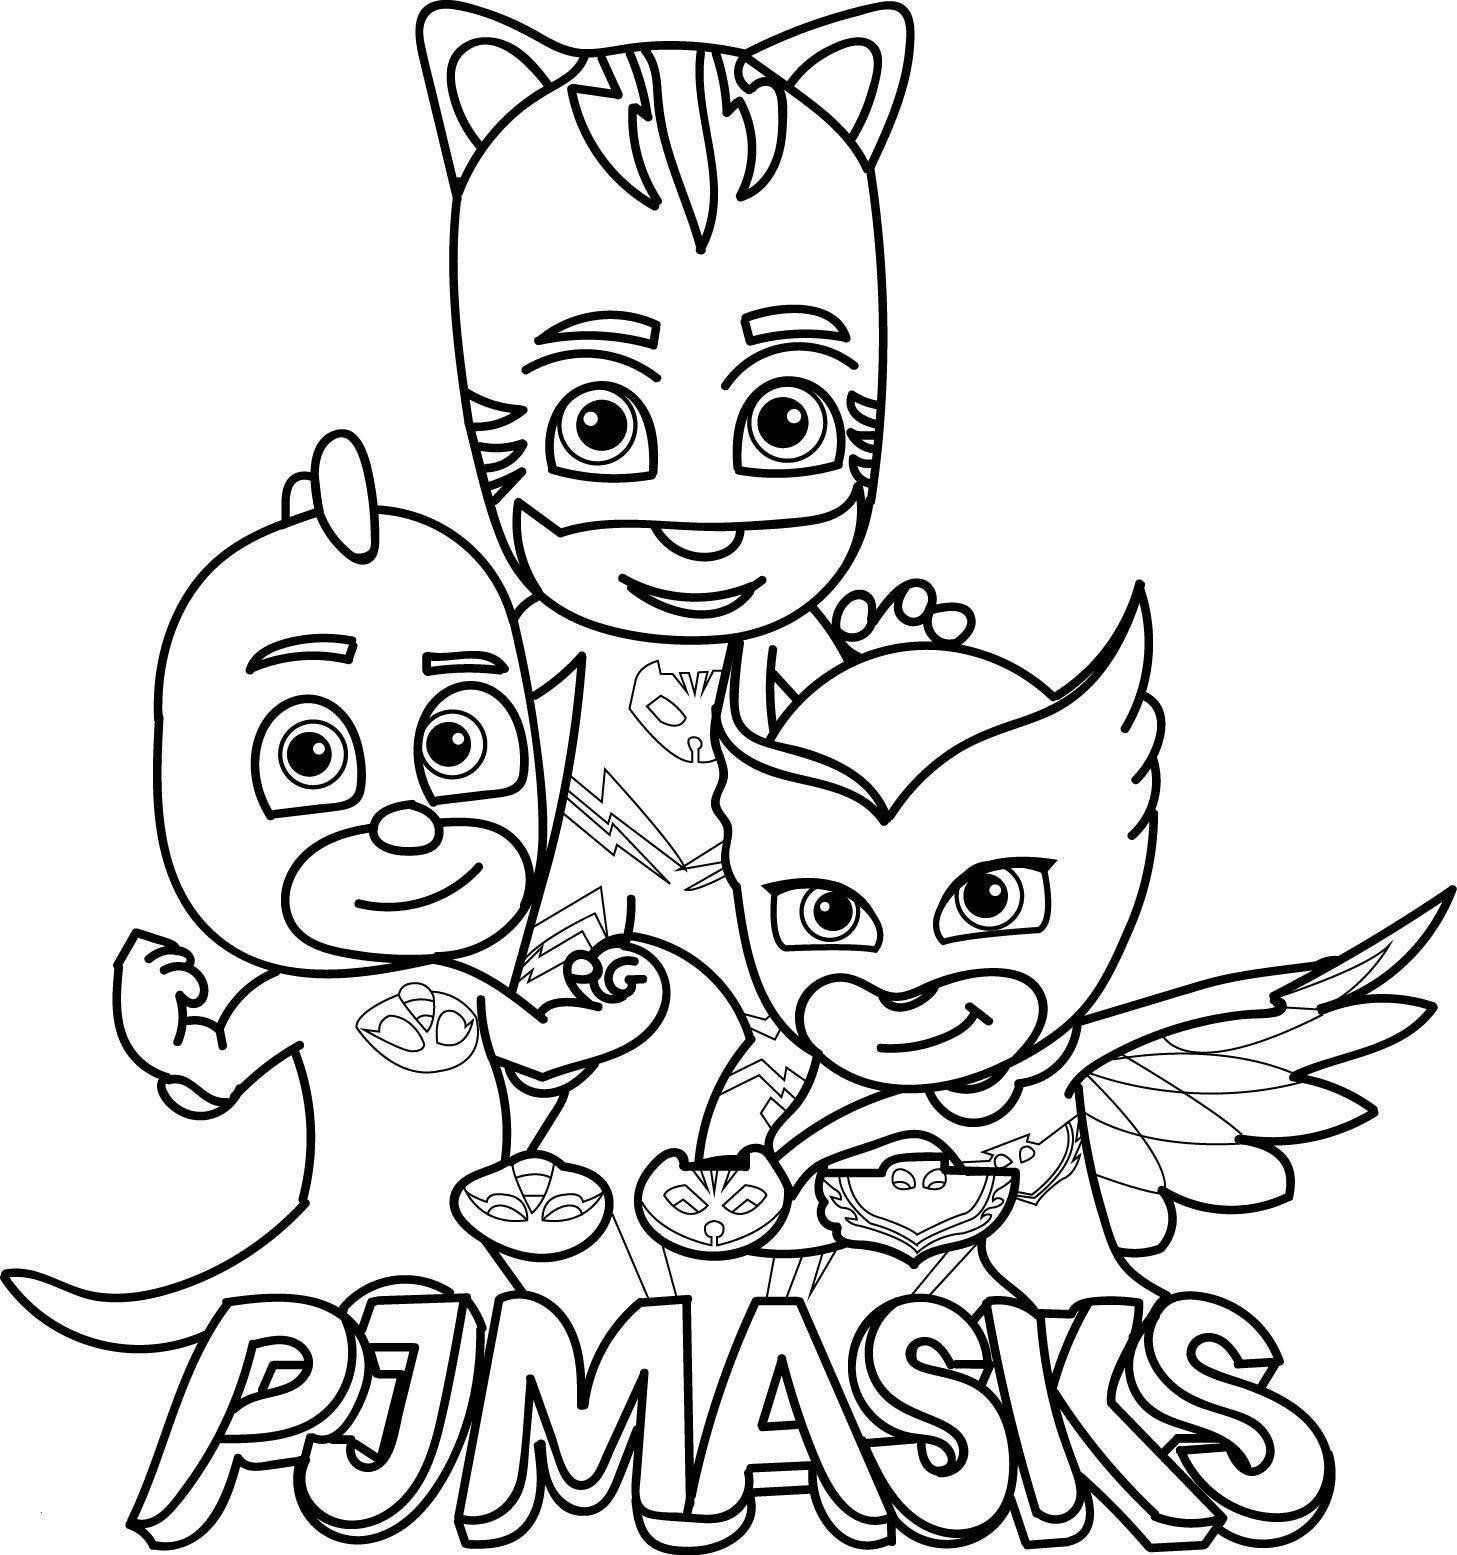 Pj Mask Coloring Pages Best Of Pj Mask Coloring Pages in ...